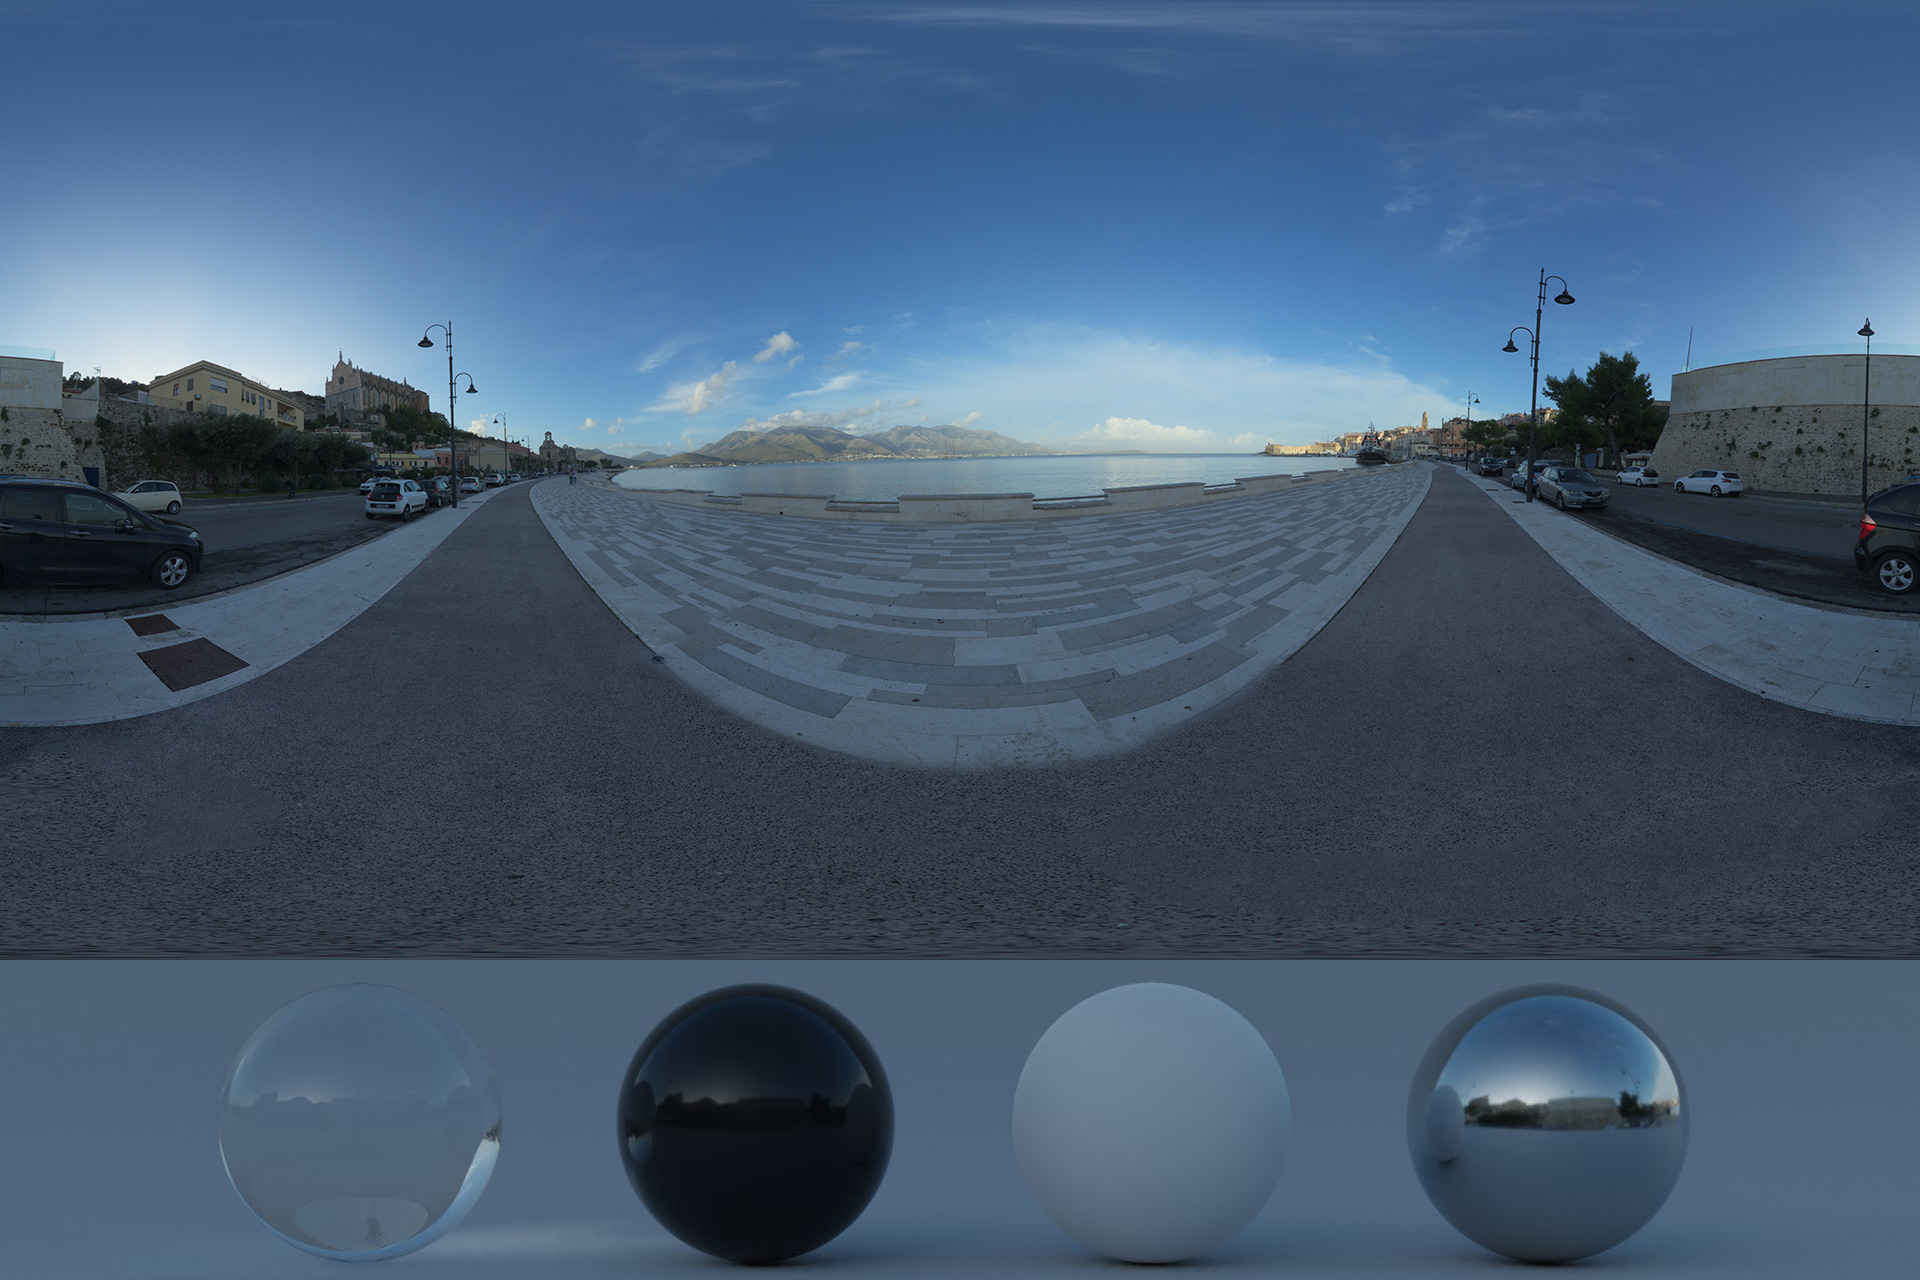 Download an Awesome HDRi Seafront